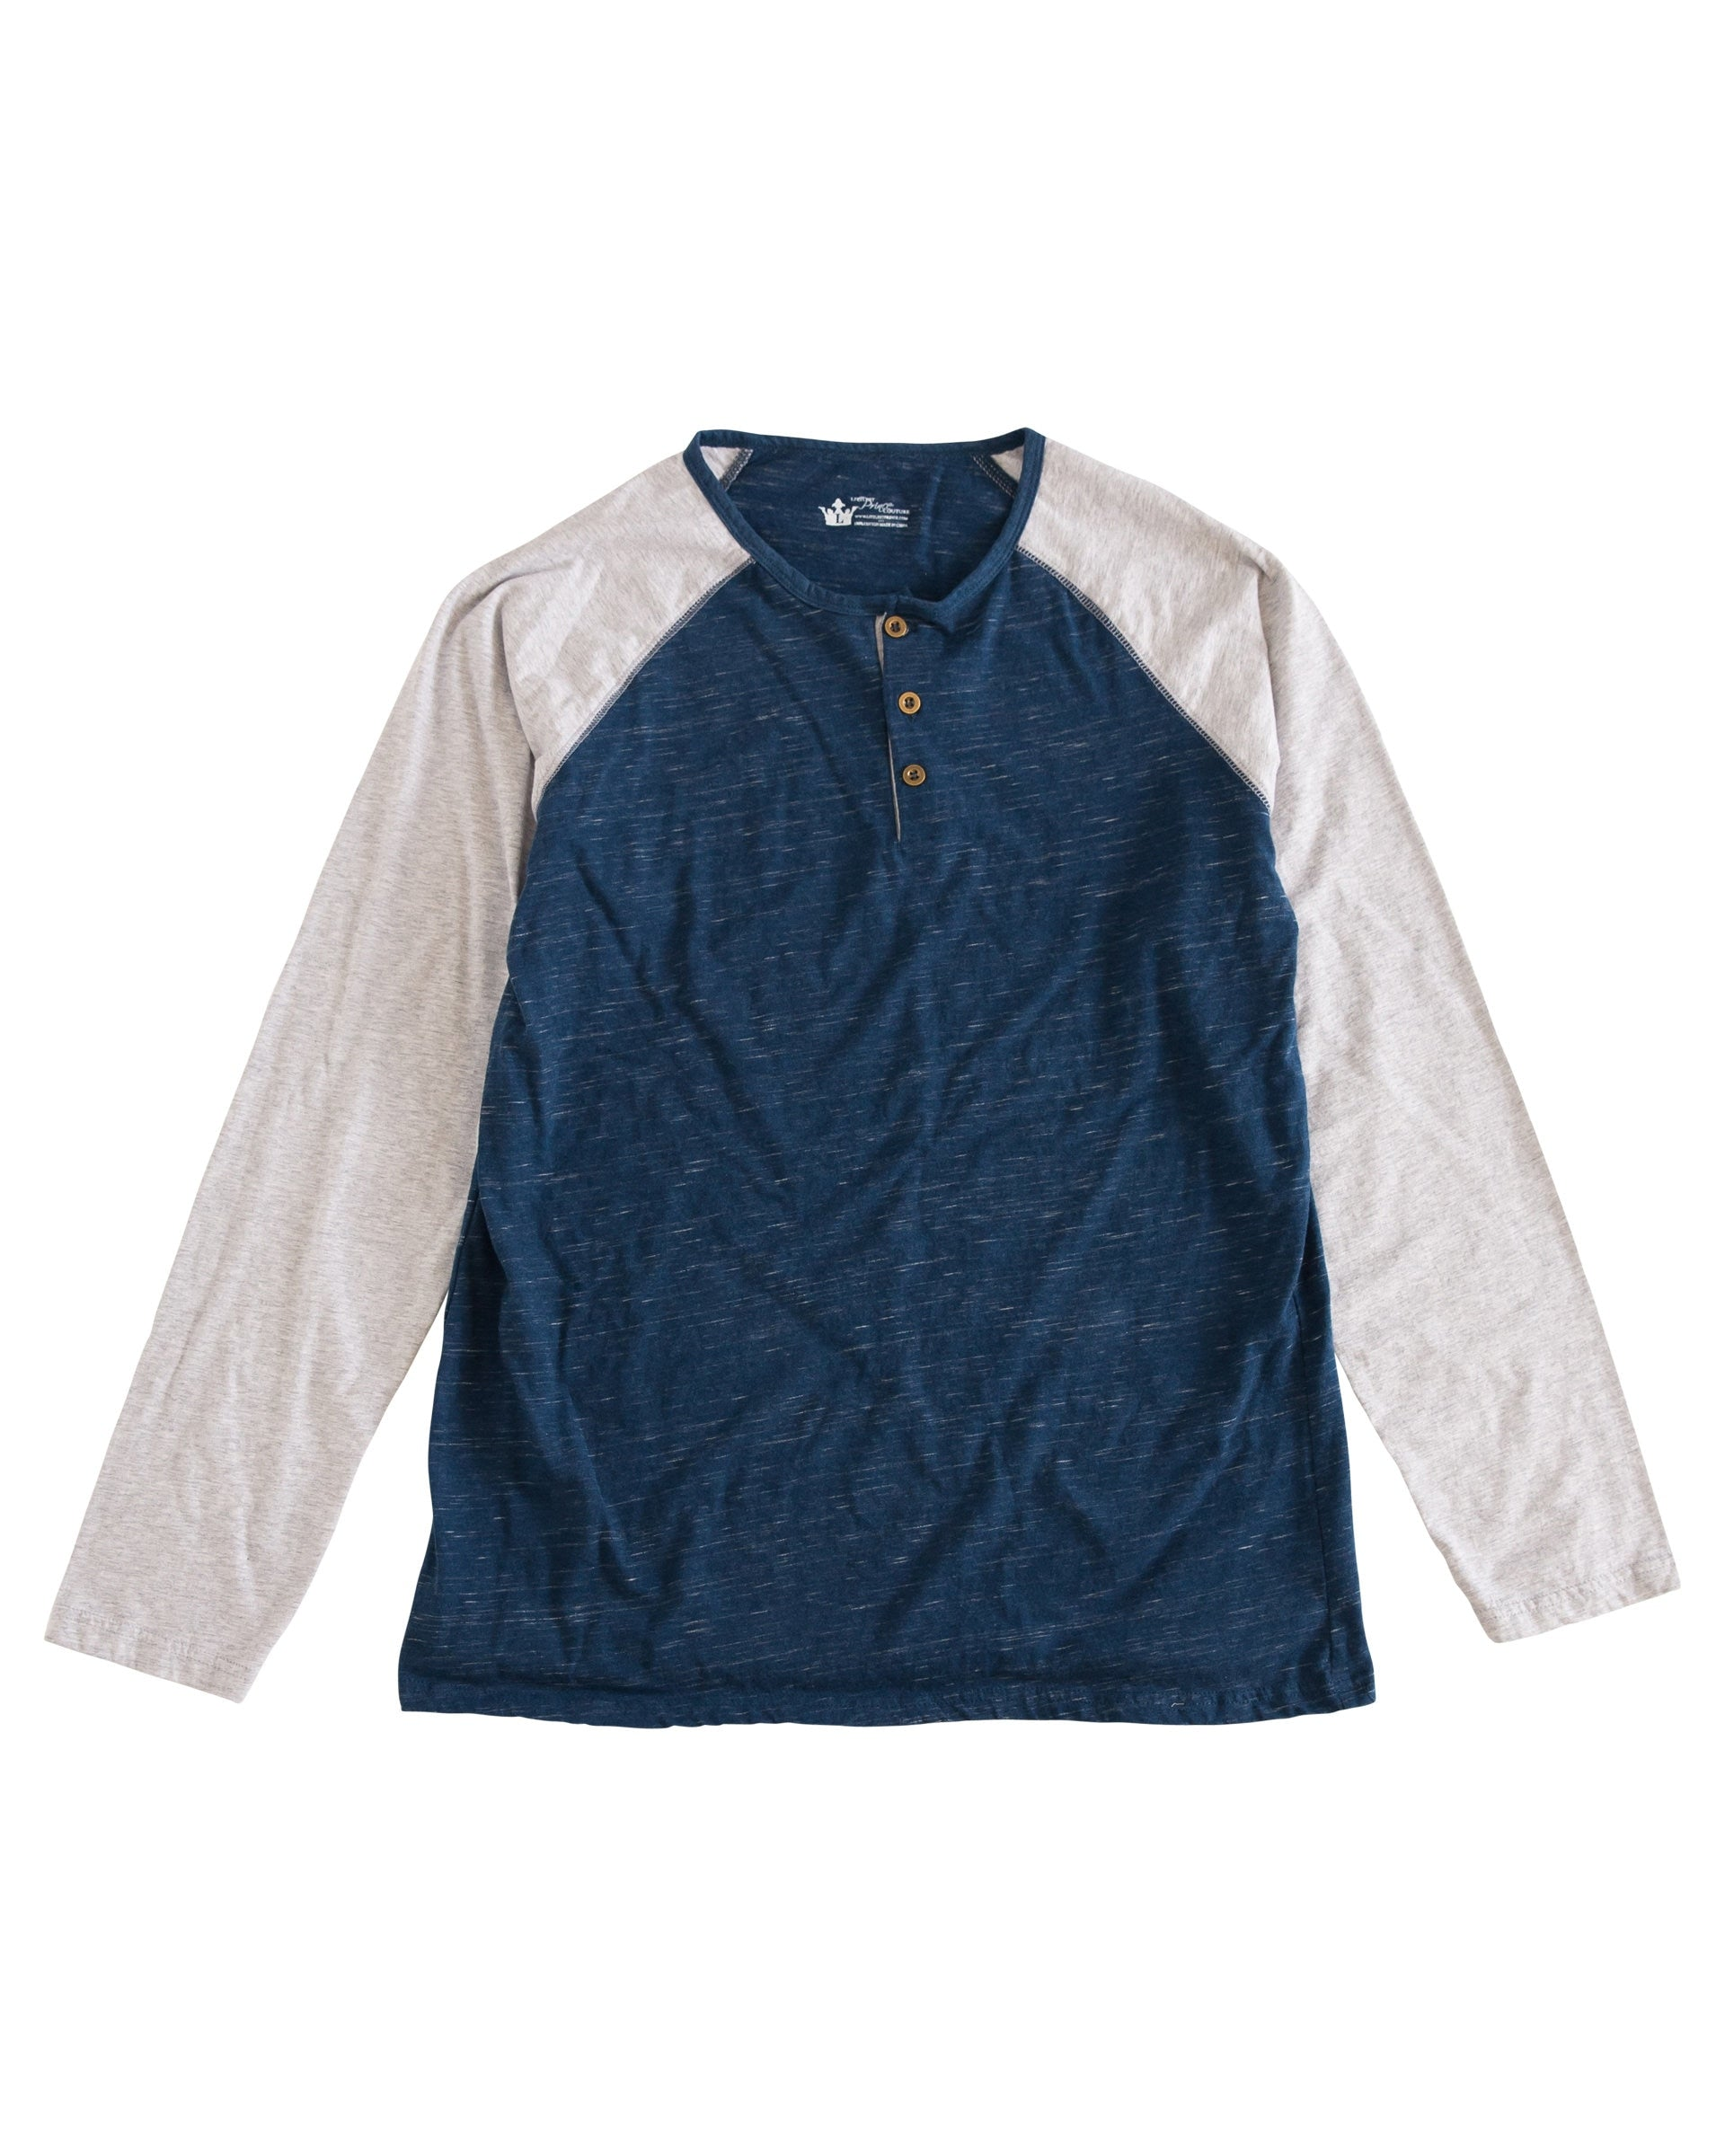 henragm-nagr-navy-gray-henley-raglan-men-s-shirt-back.jpg